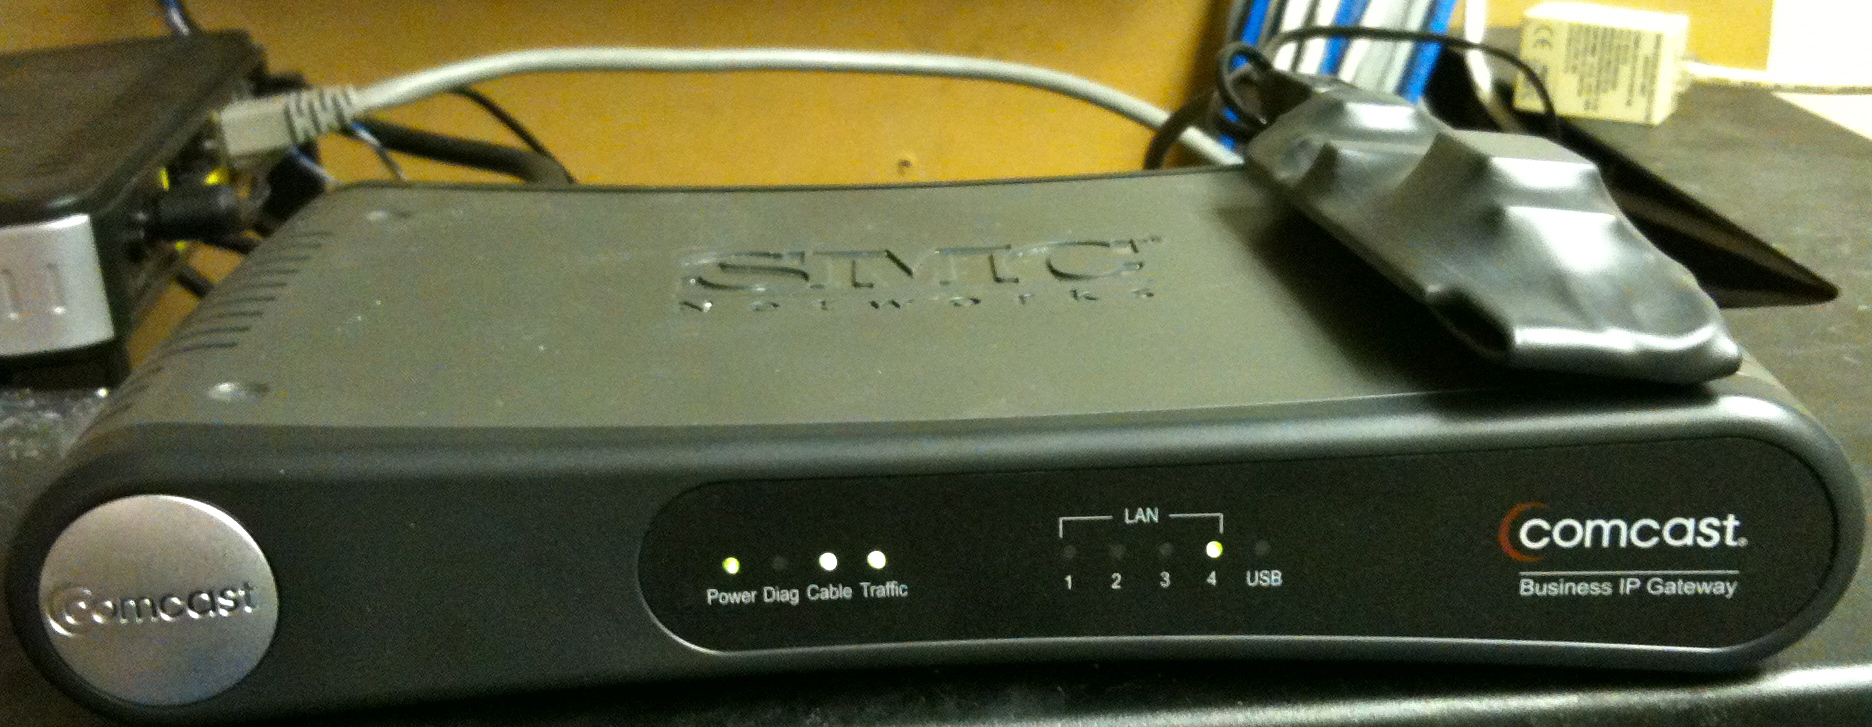 How to auto-reboot your Comcast cable modem  